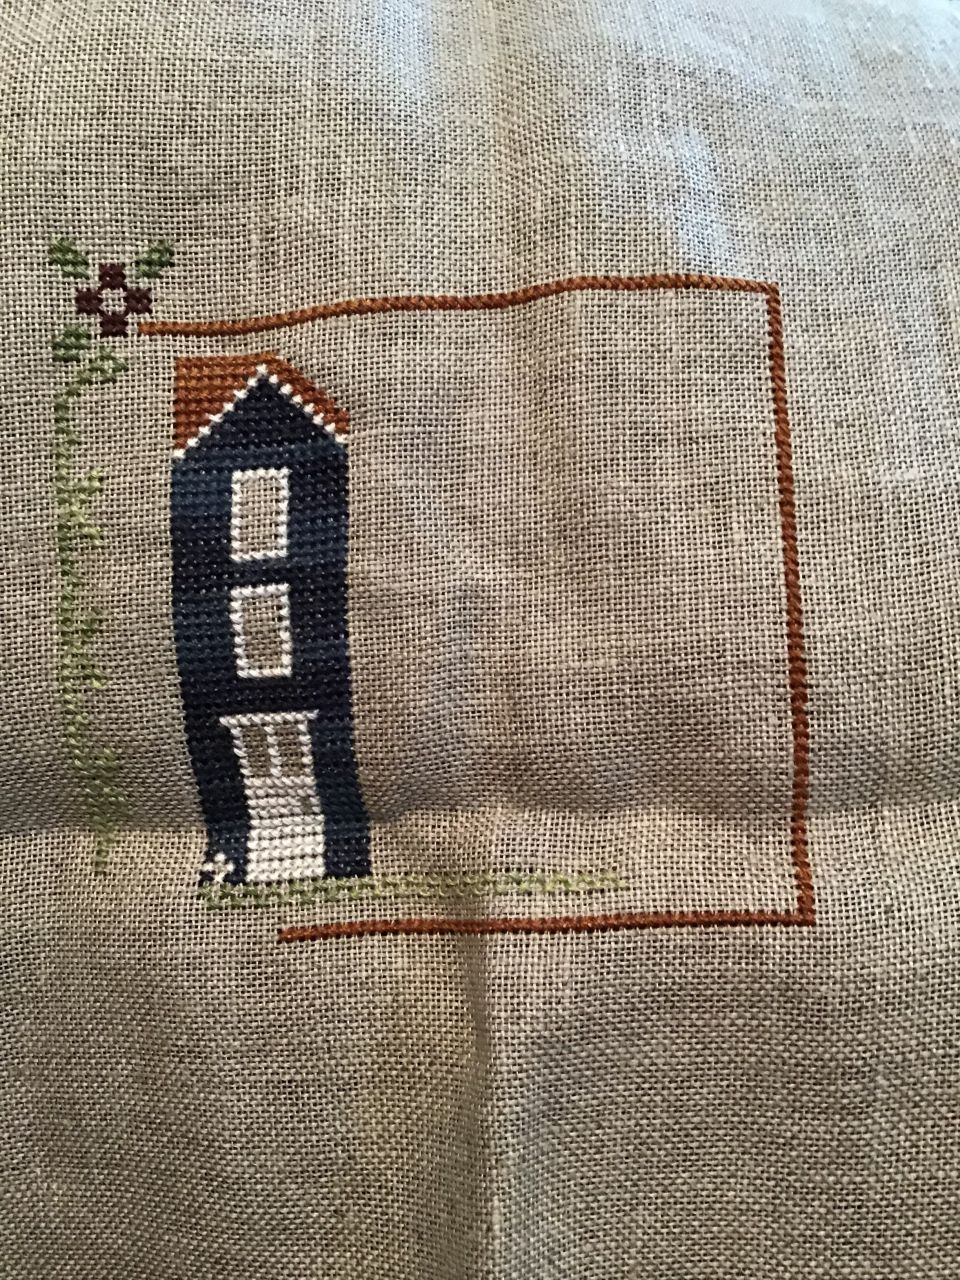 I am working on Little House Needleworks May.  It is part of a series.